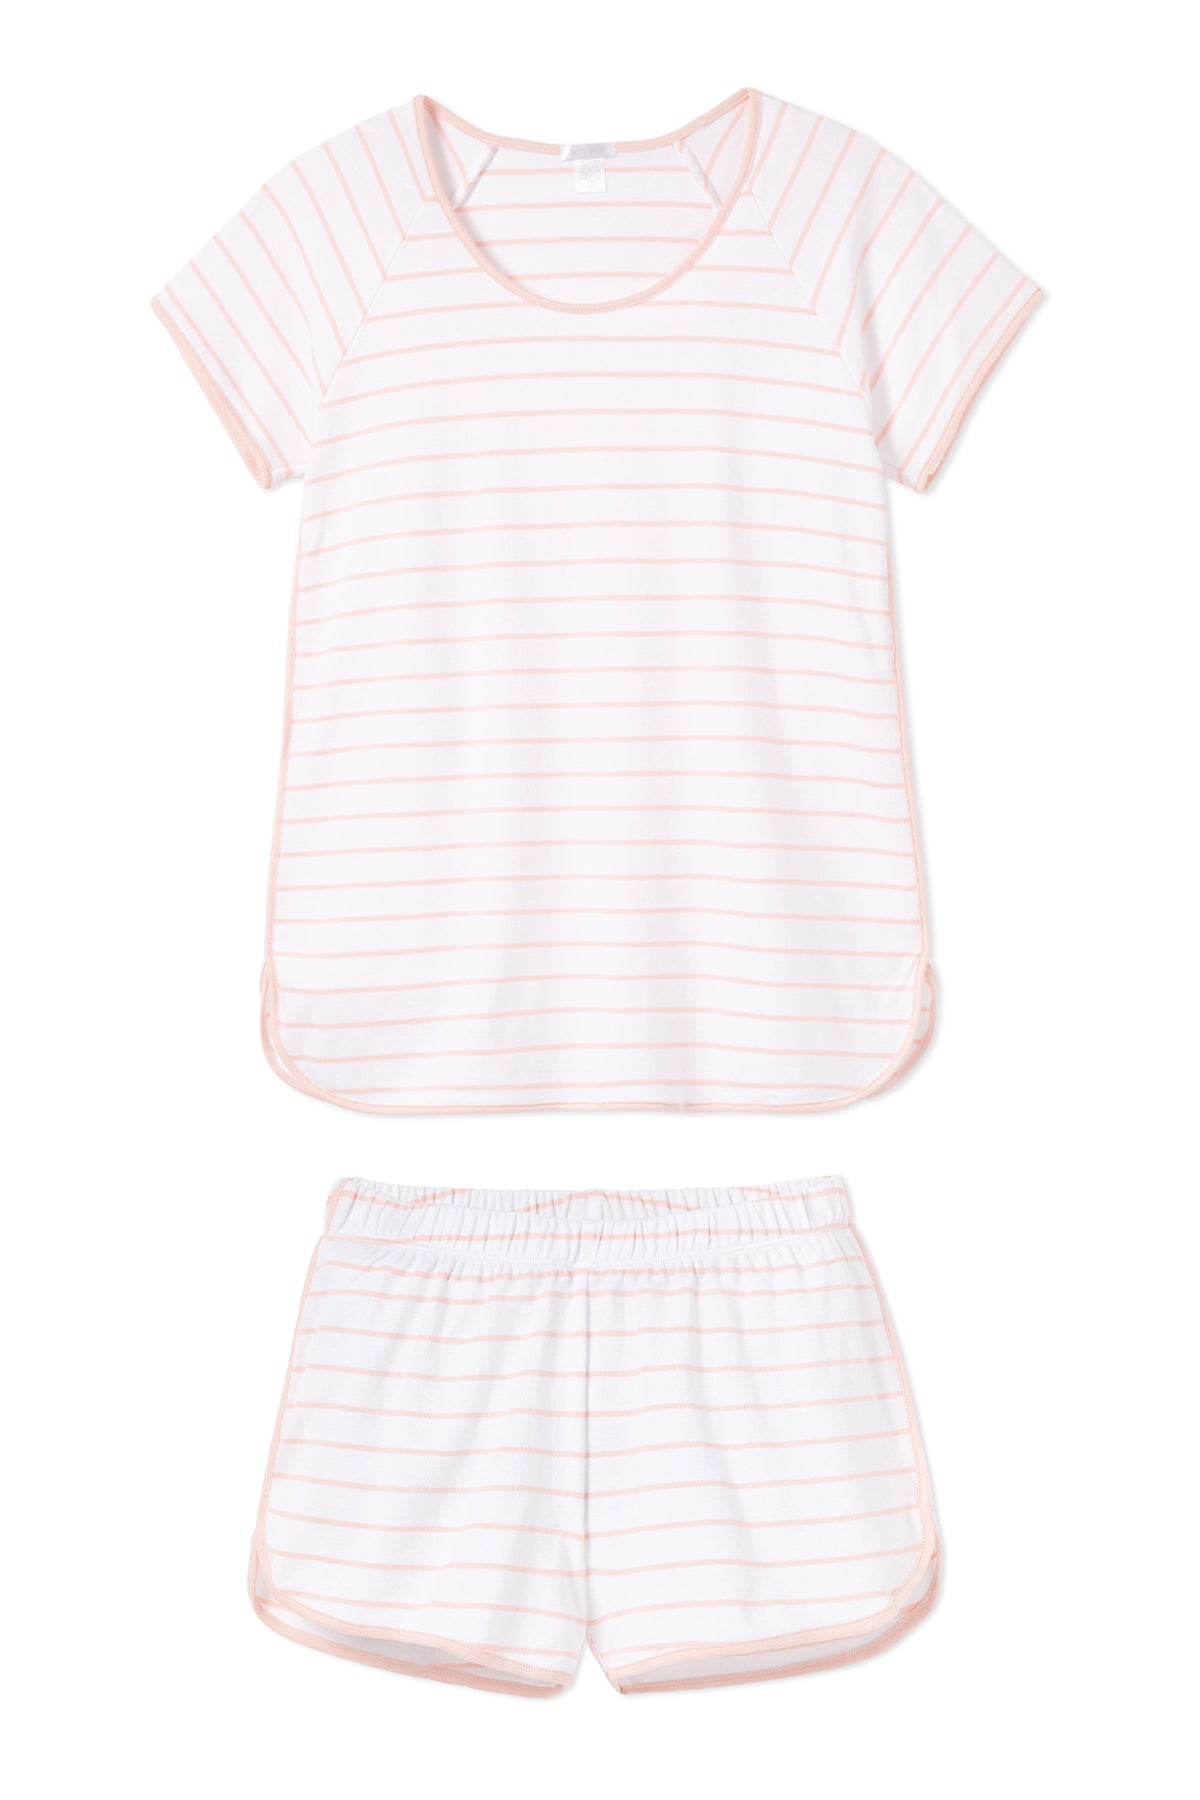 Pima Shorts Set in Peach